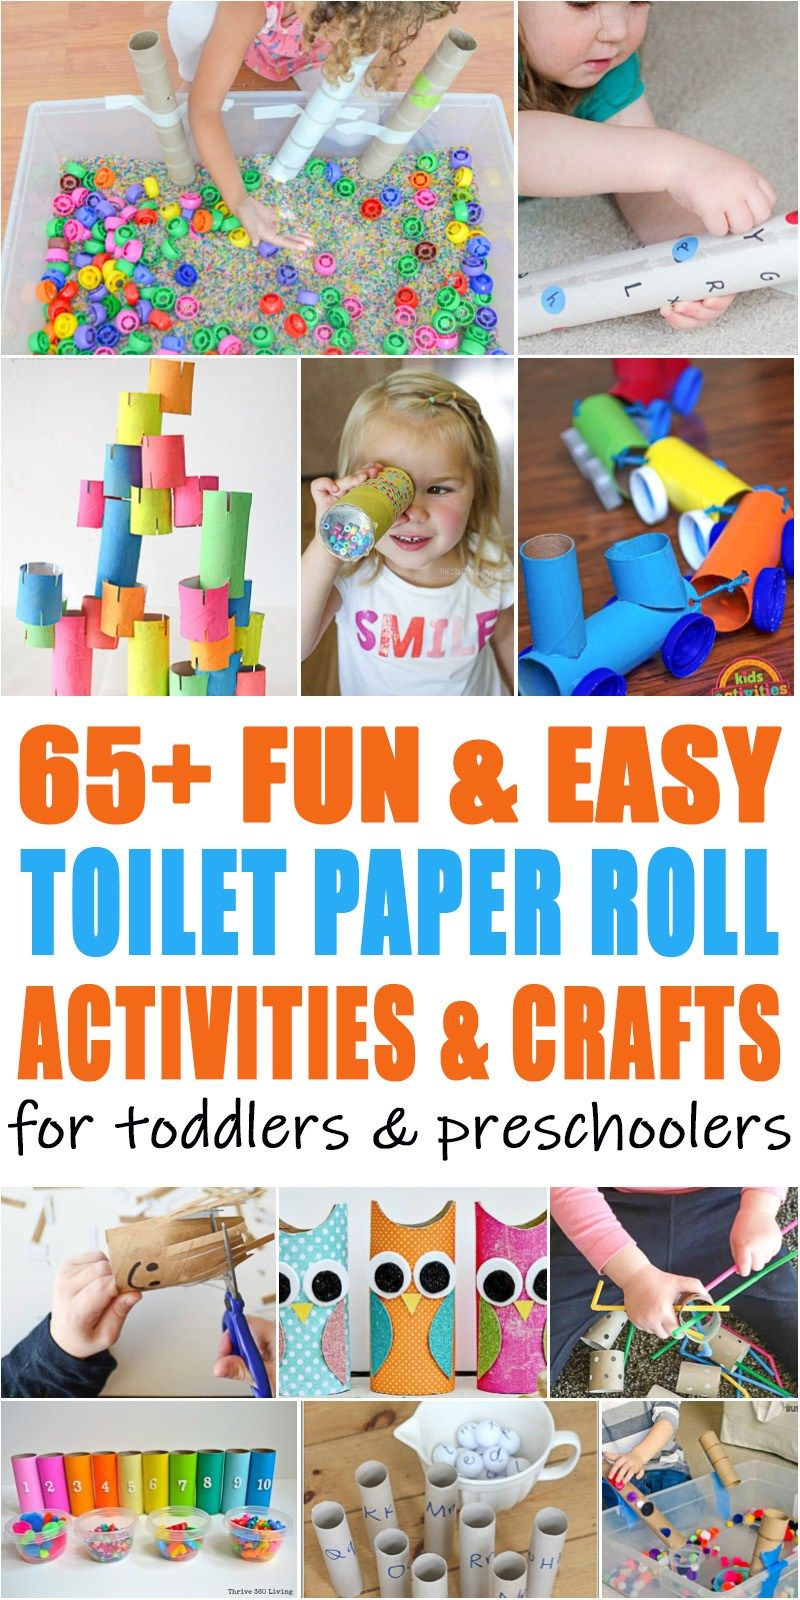 65 Easy Toilet Paper Roll Activities Happy Toddler Playtime Paper Towel Roll Crafts Toilet Paper Crafts Paper Roll Crafts